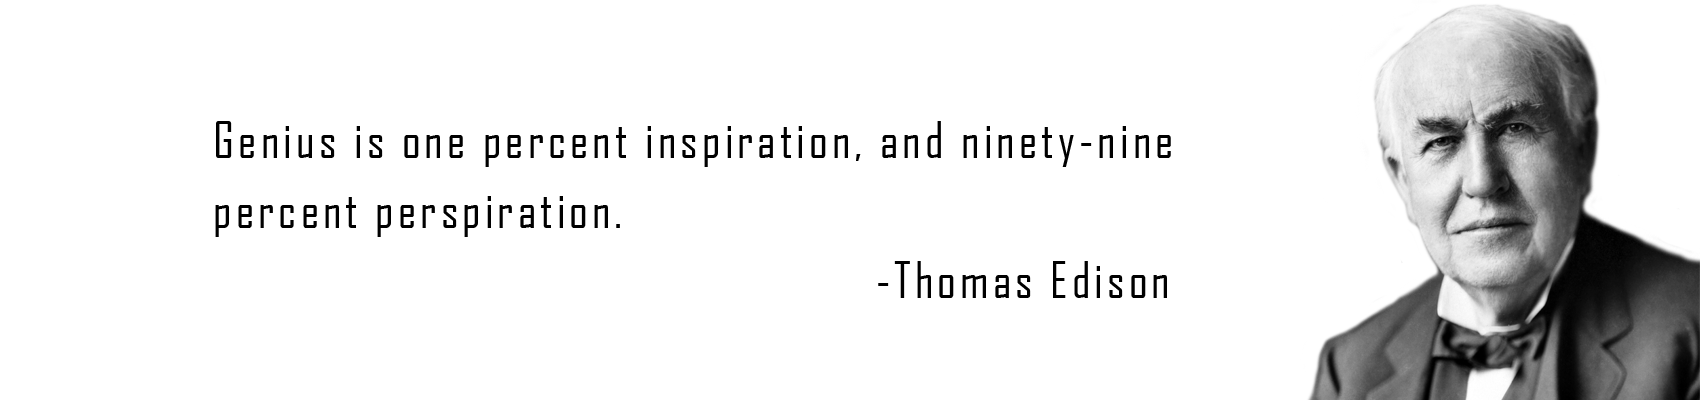 genius is one percent inspiration and ninety nine percent perspiration